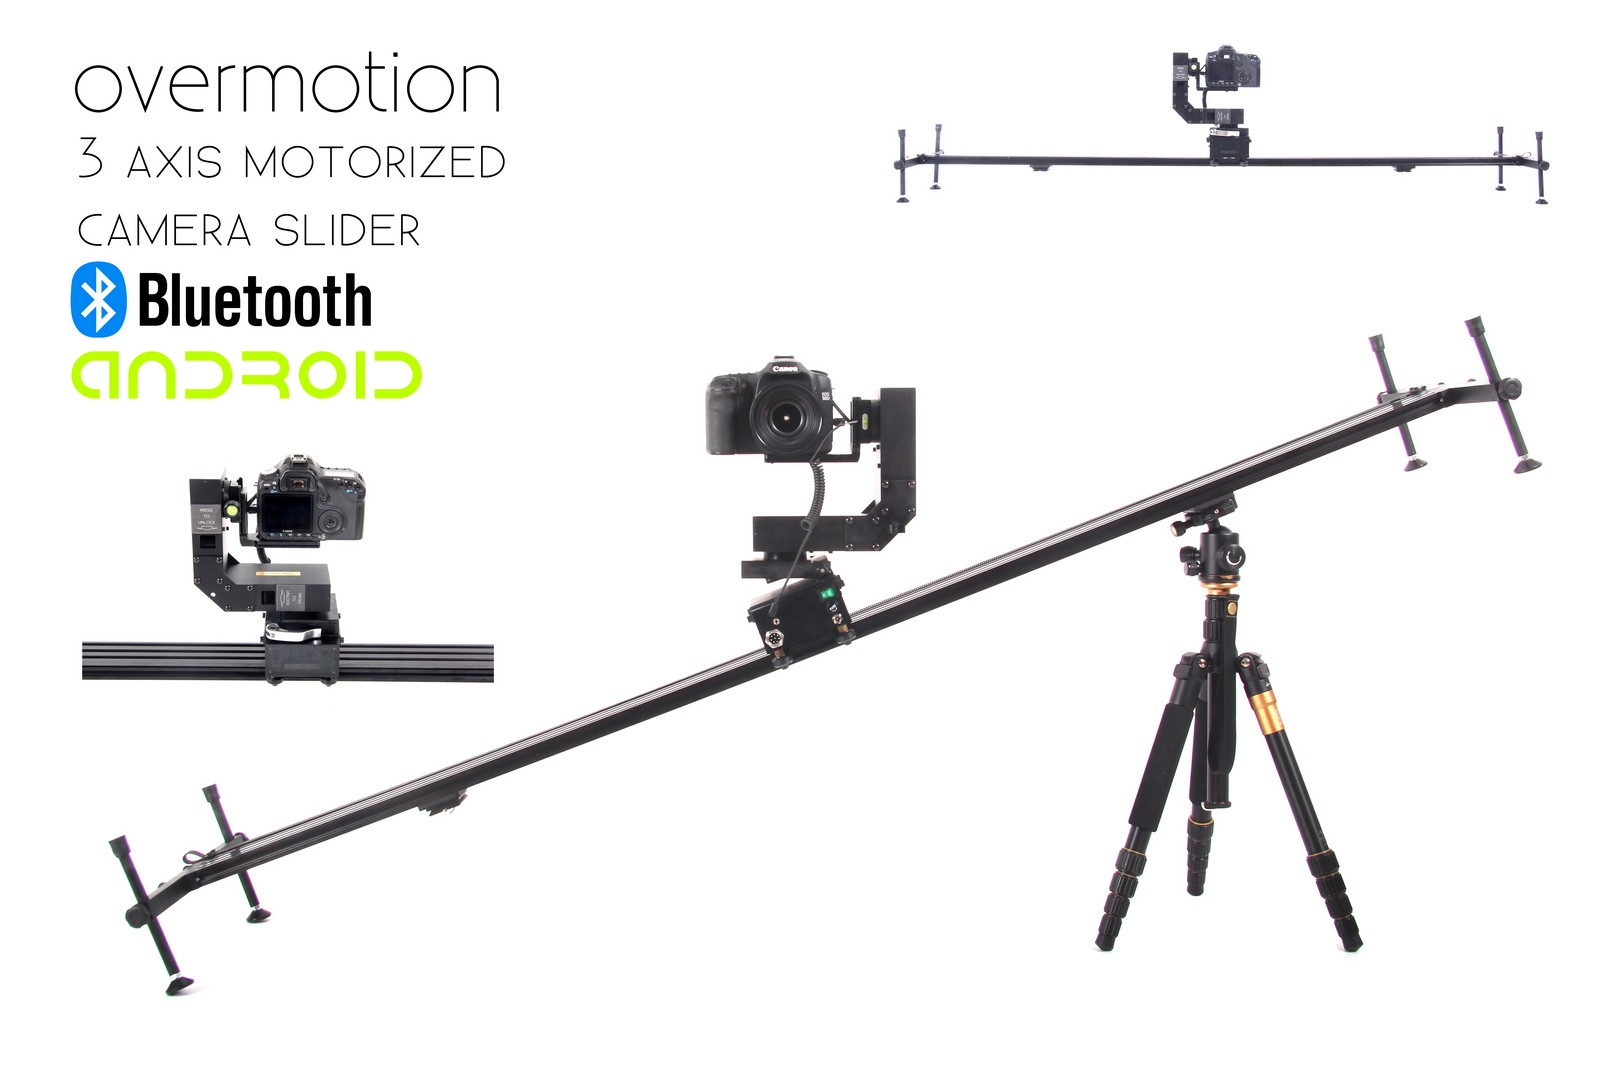 motorized camera slider 3 axis   motion control overmotion bluetooth android